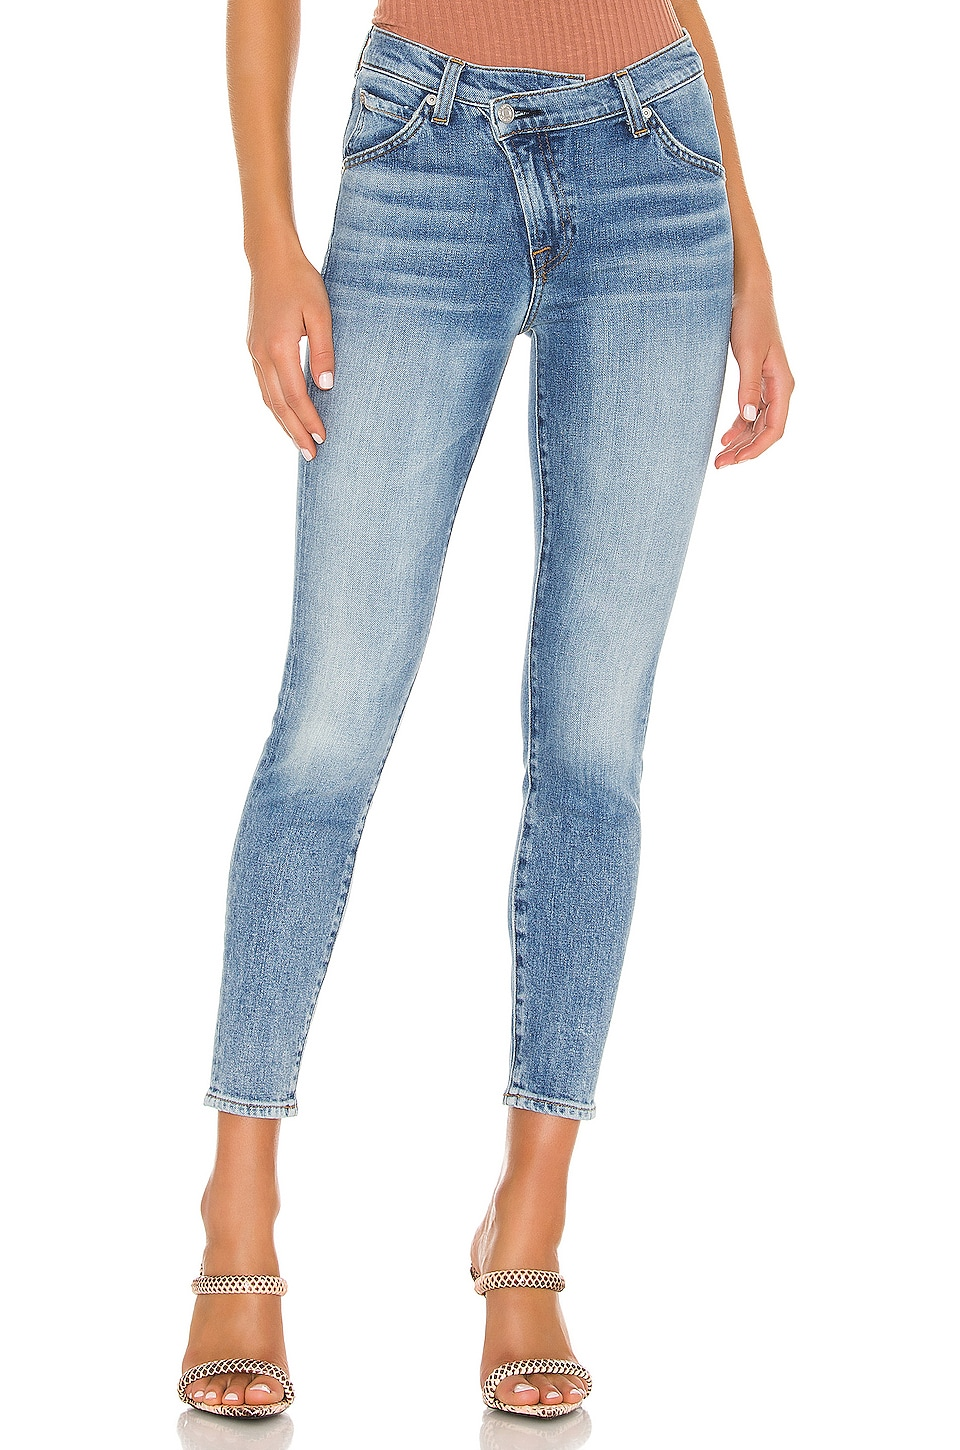 7 For All Mankind JEAN SKINNY